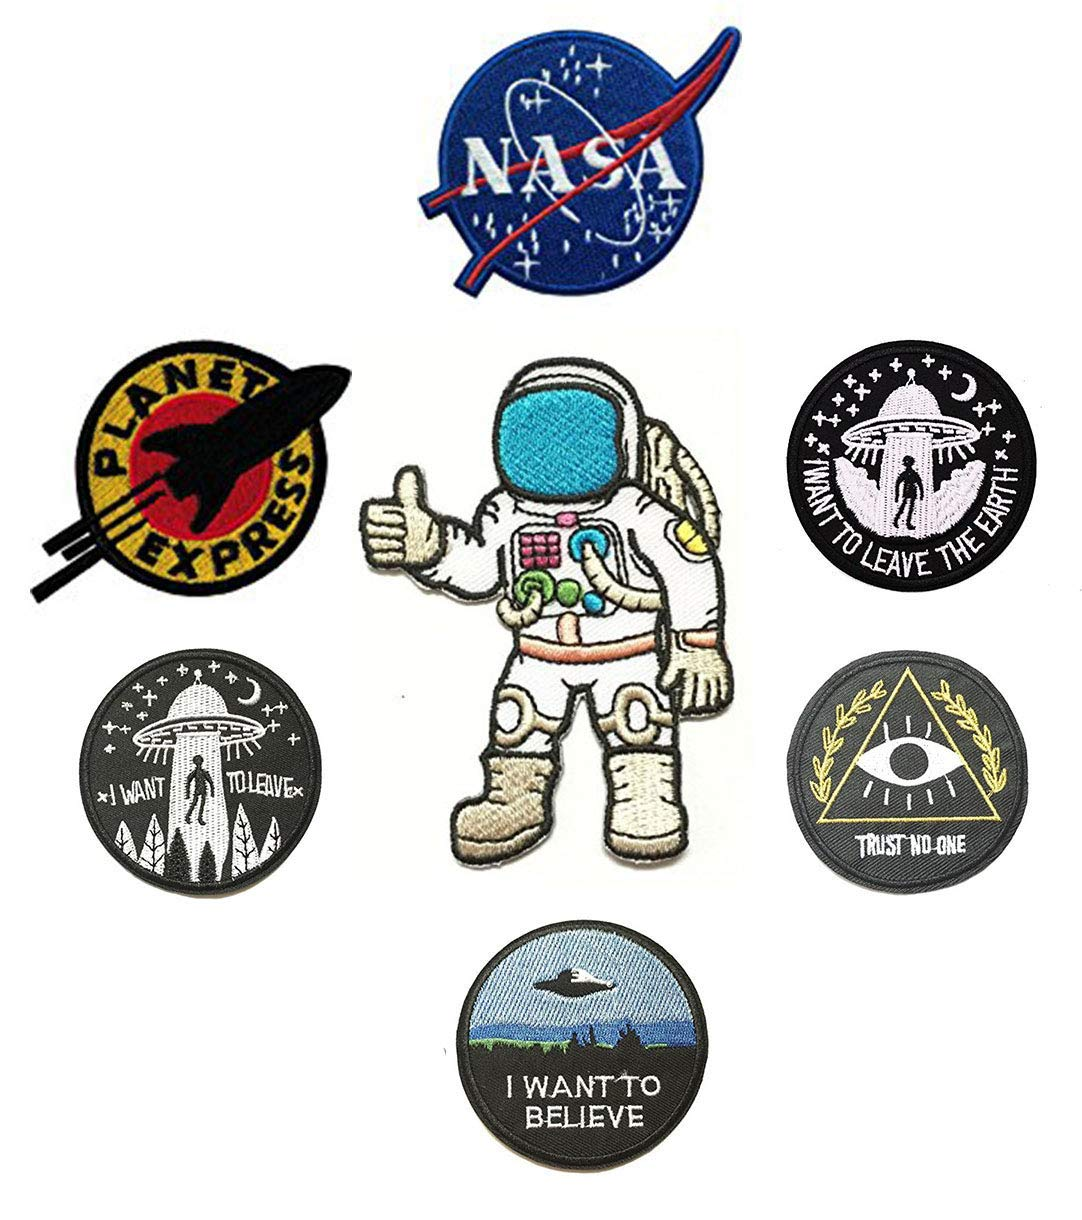 7 Pieces Space Theme Patch Set NASA/I Want to Leave The Earth/Trust No One/I Want to Believe/I Want to Leave/Planet Express/Astronaut Embroidered Applique Morale Patch by Antrix